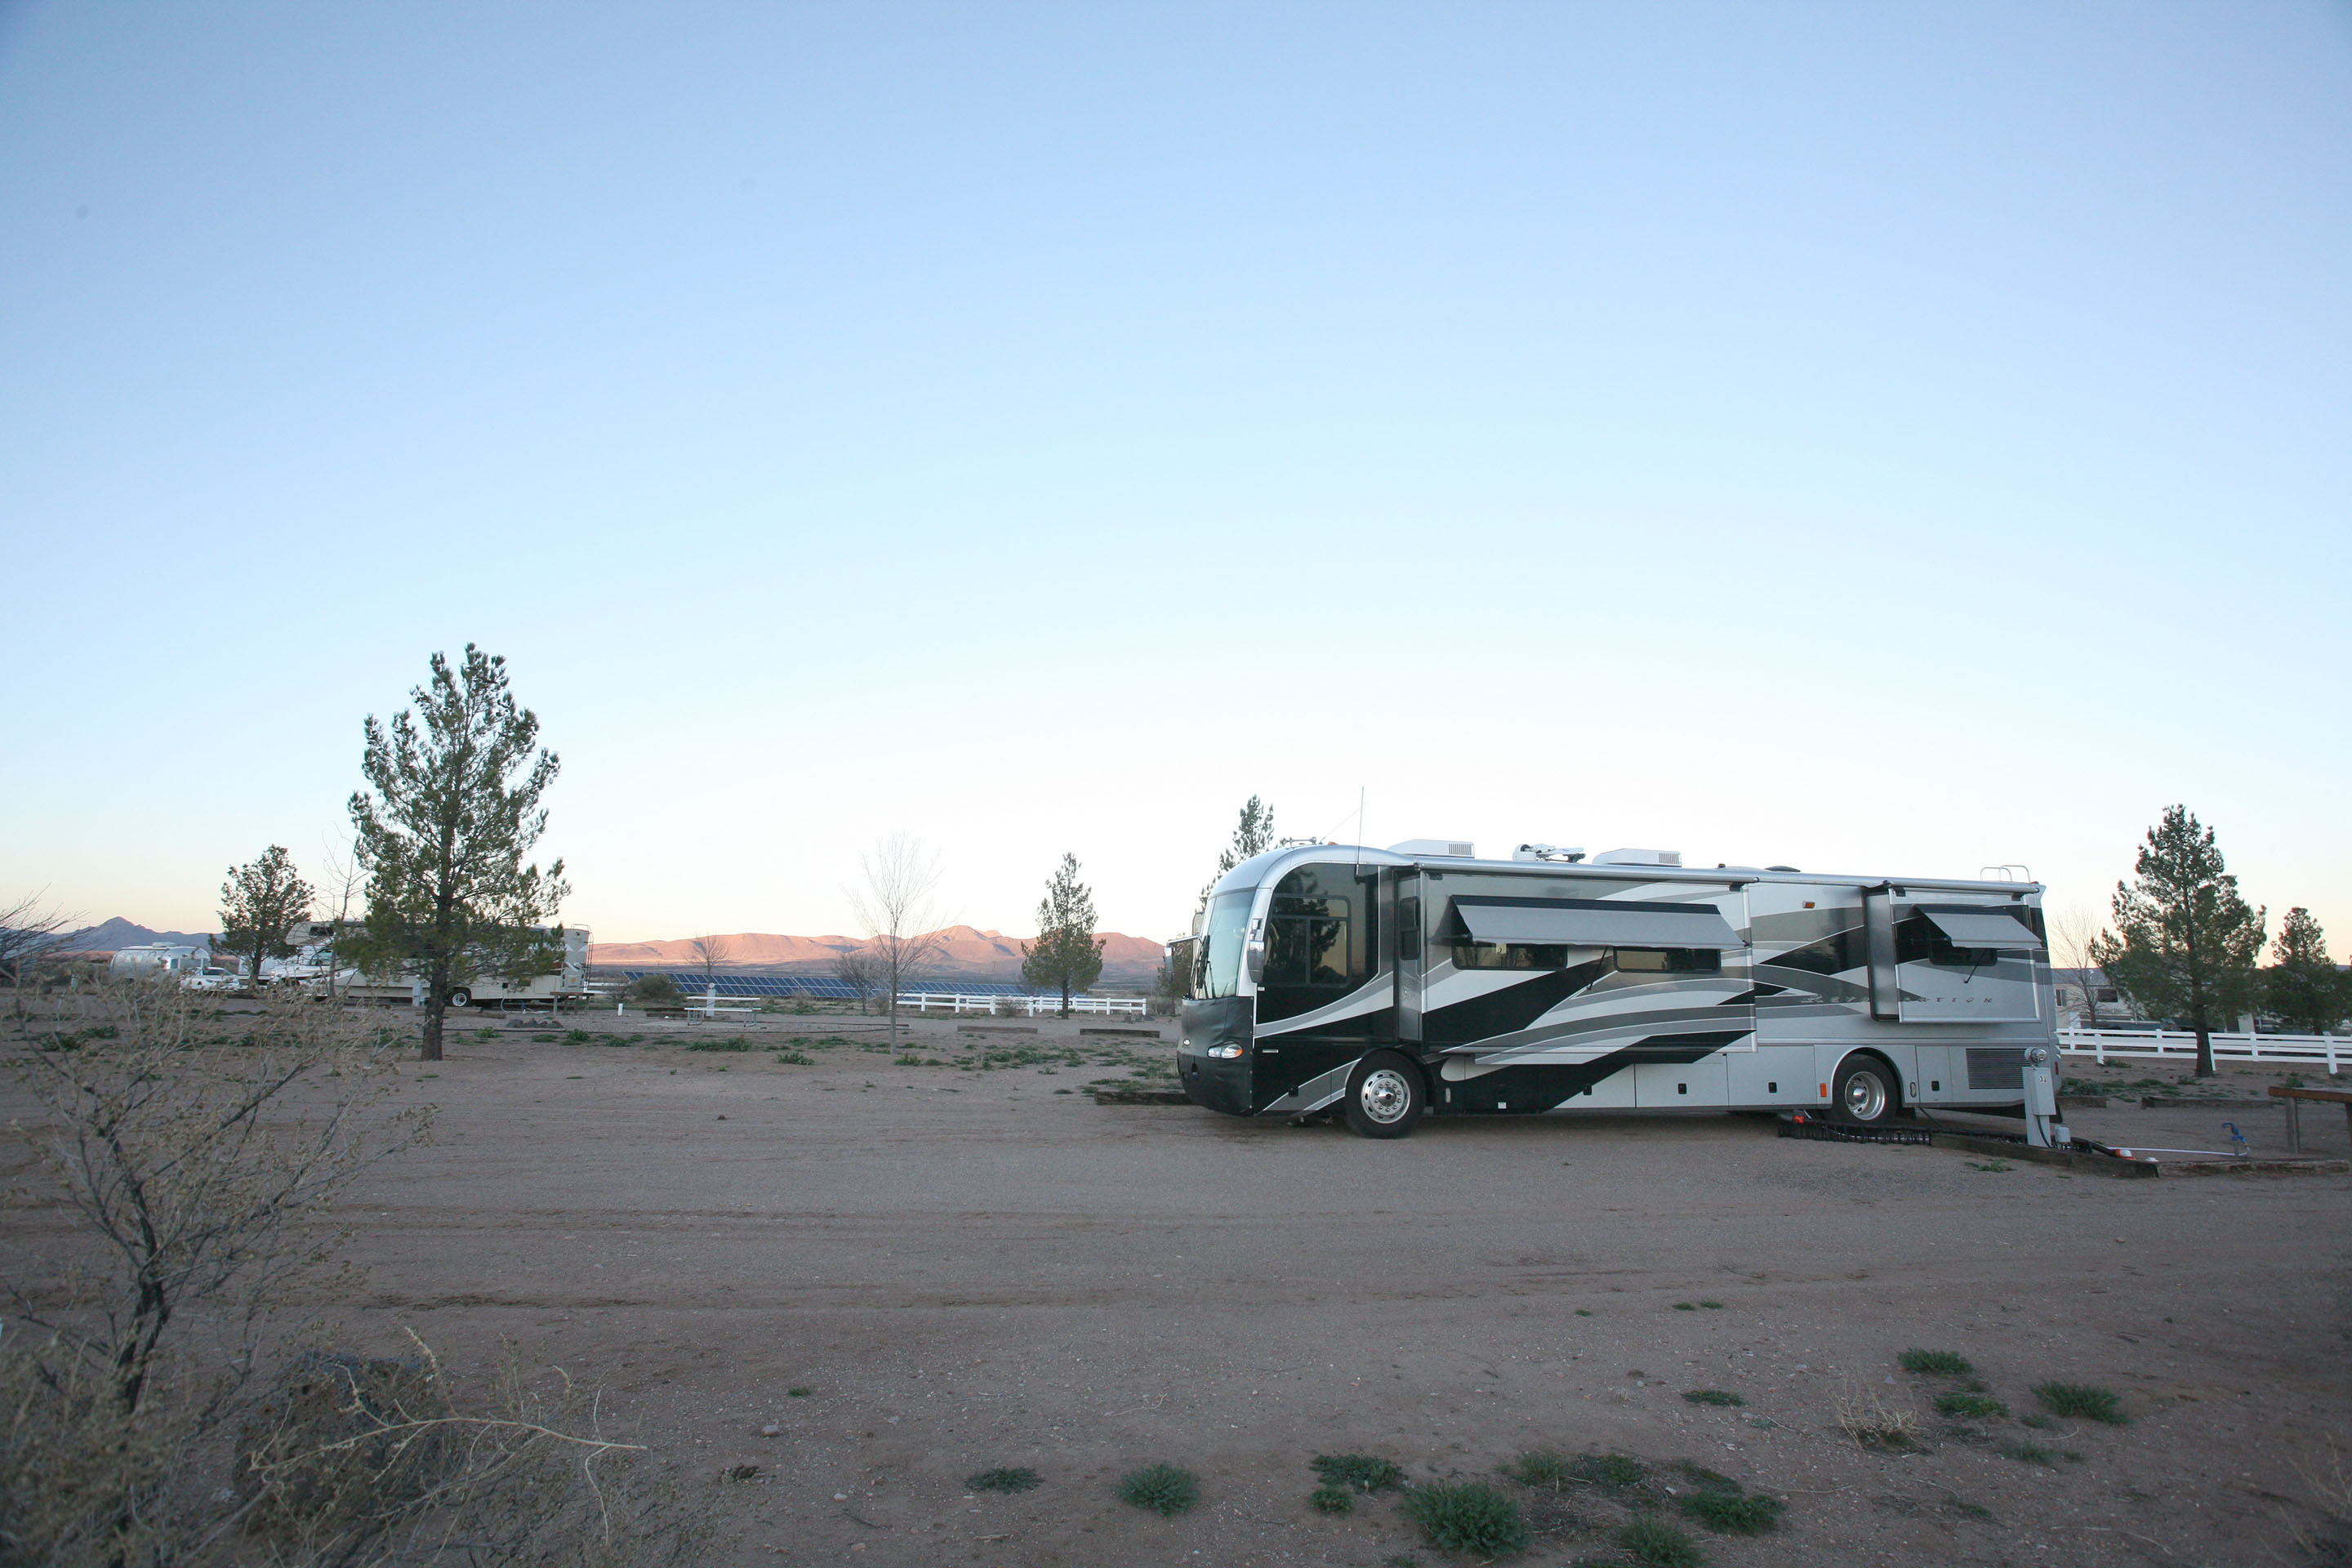 Our RV parked at Rusty's